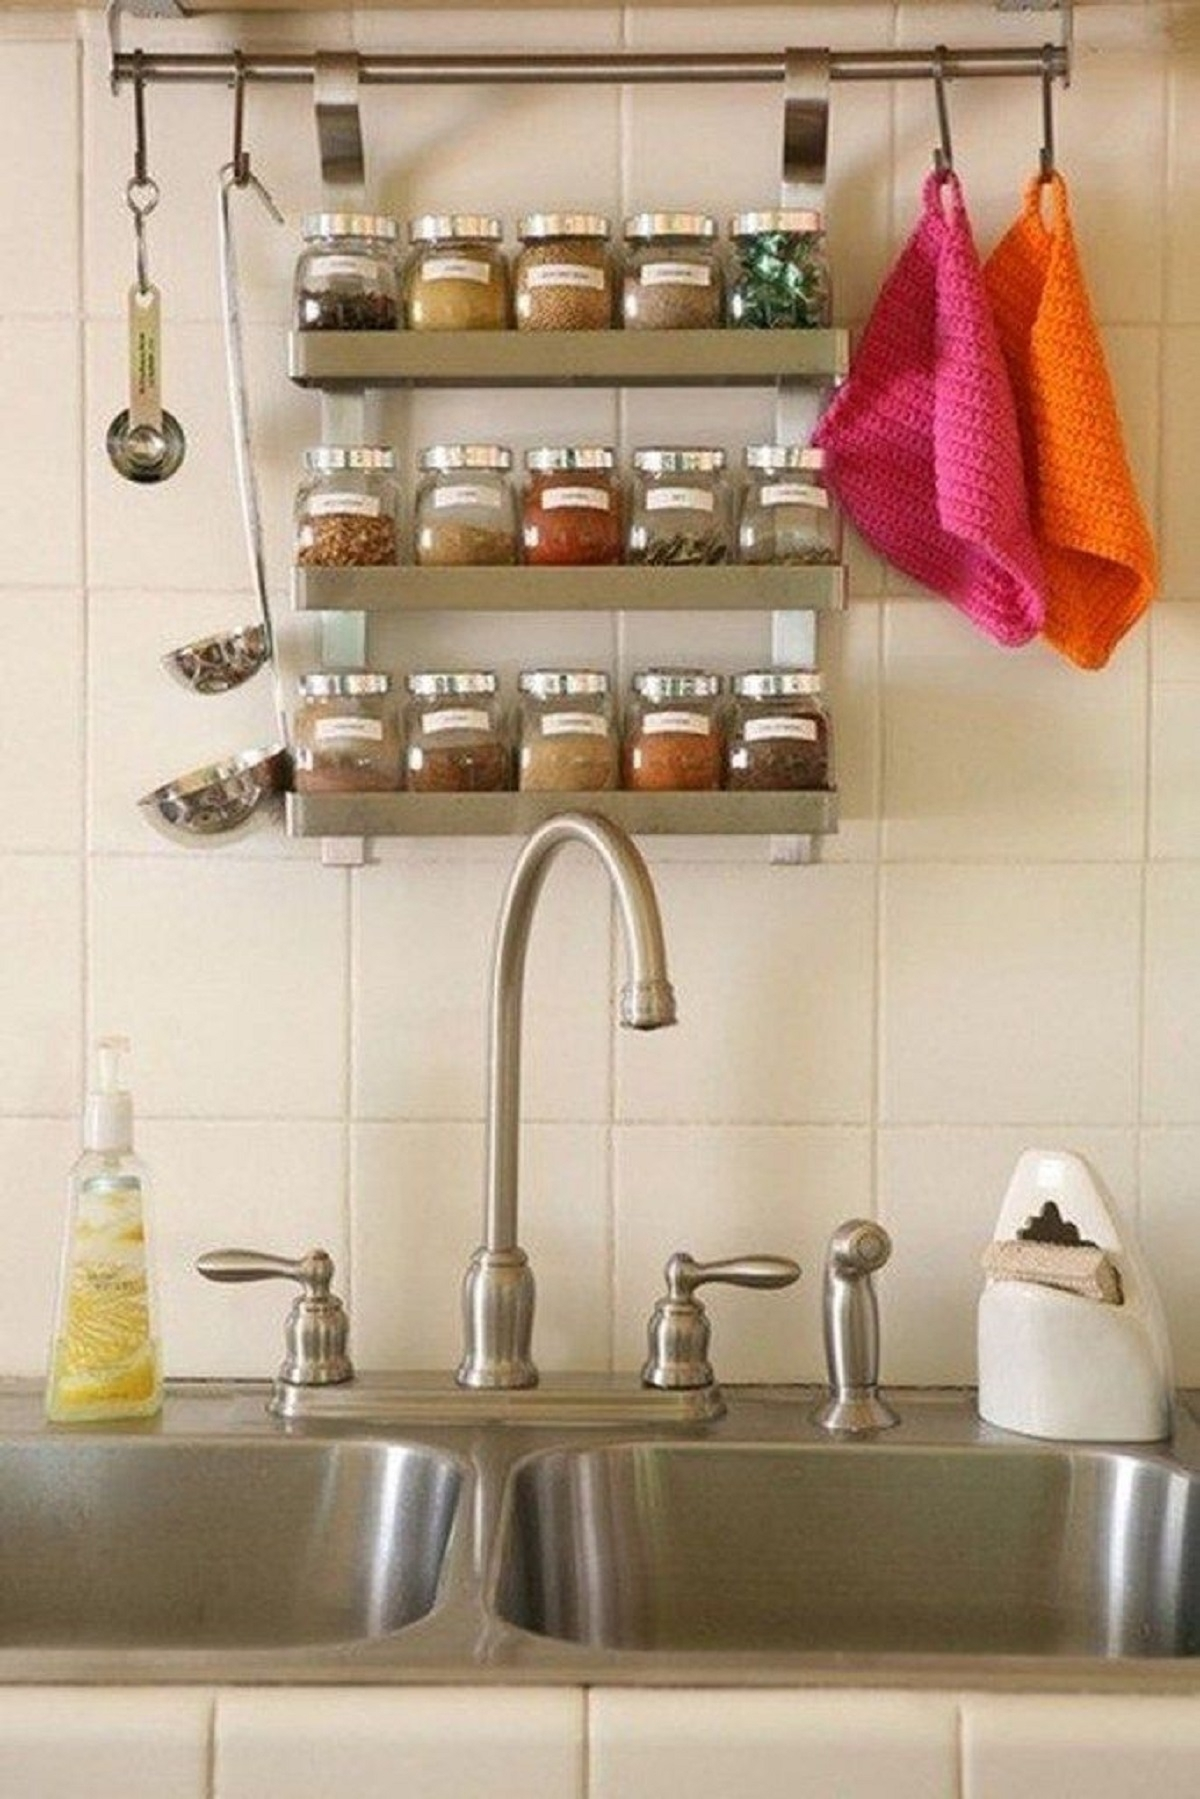 Image of: Wall Hanging Spice Rack Ideas On Foter